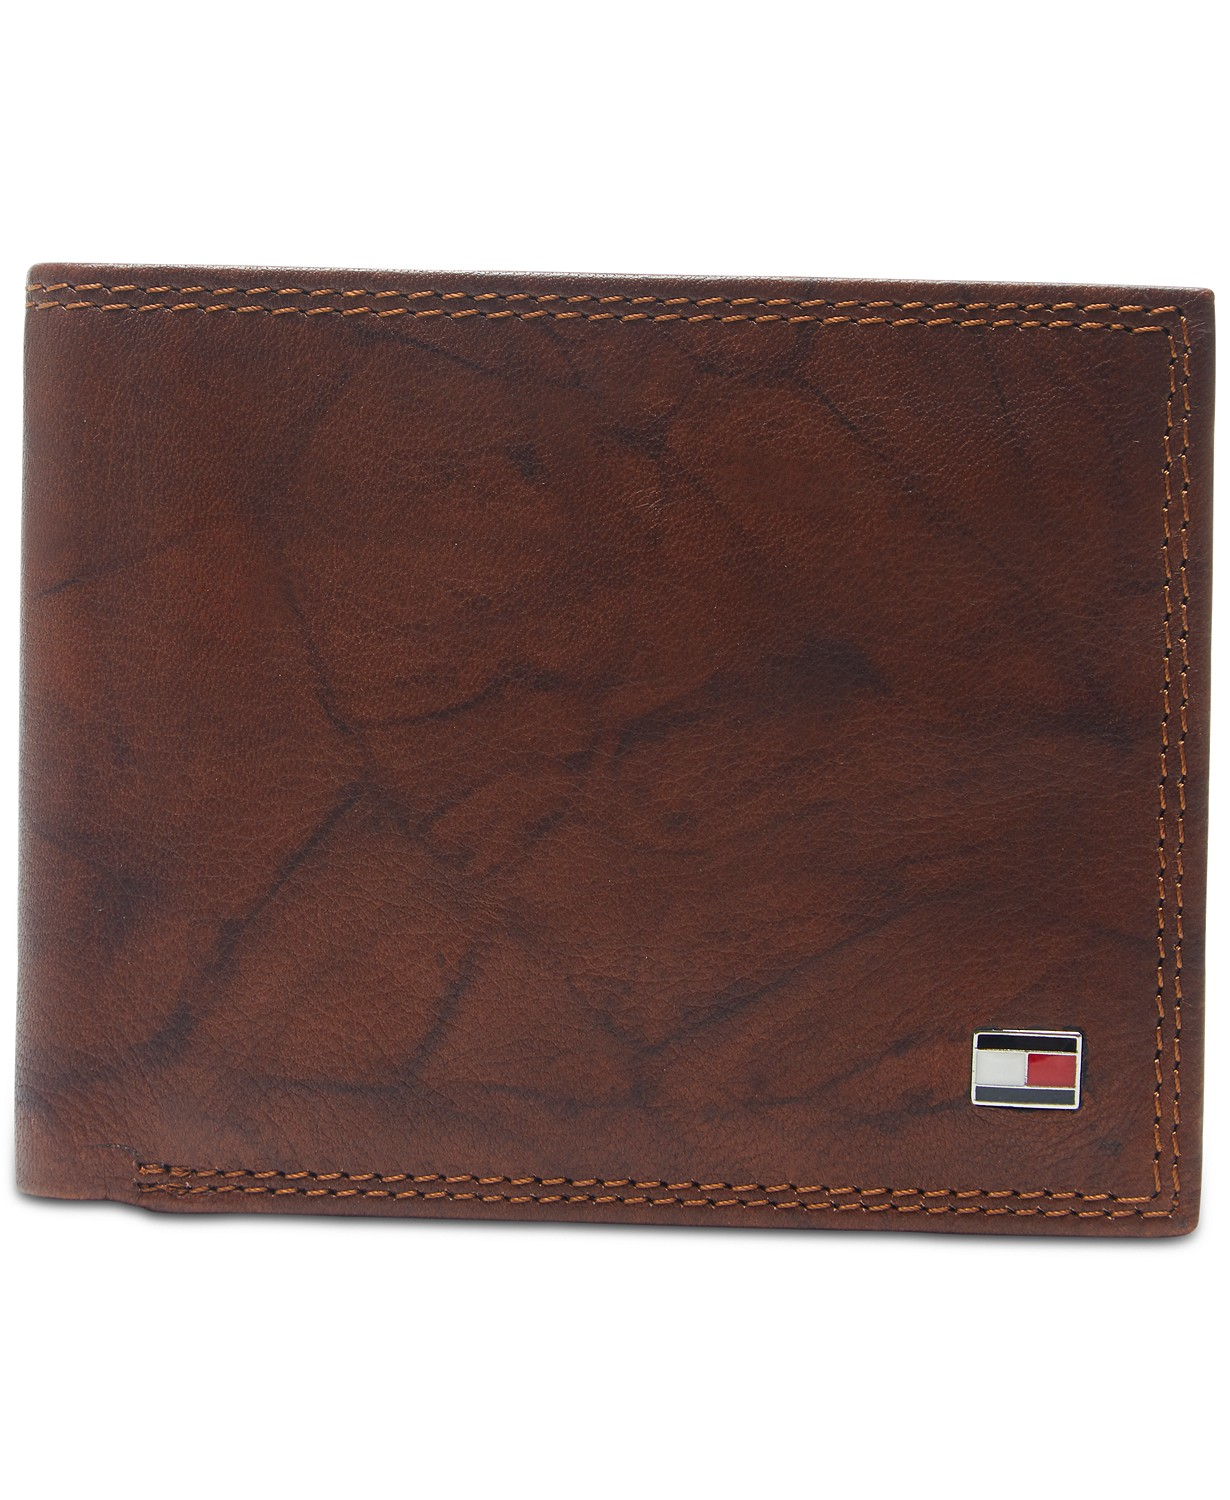 Men's Traveler Extra-Capacity Leather Wallet- Tommy Hilfiger